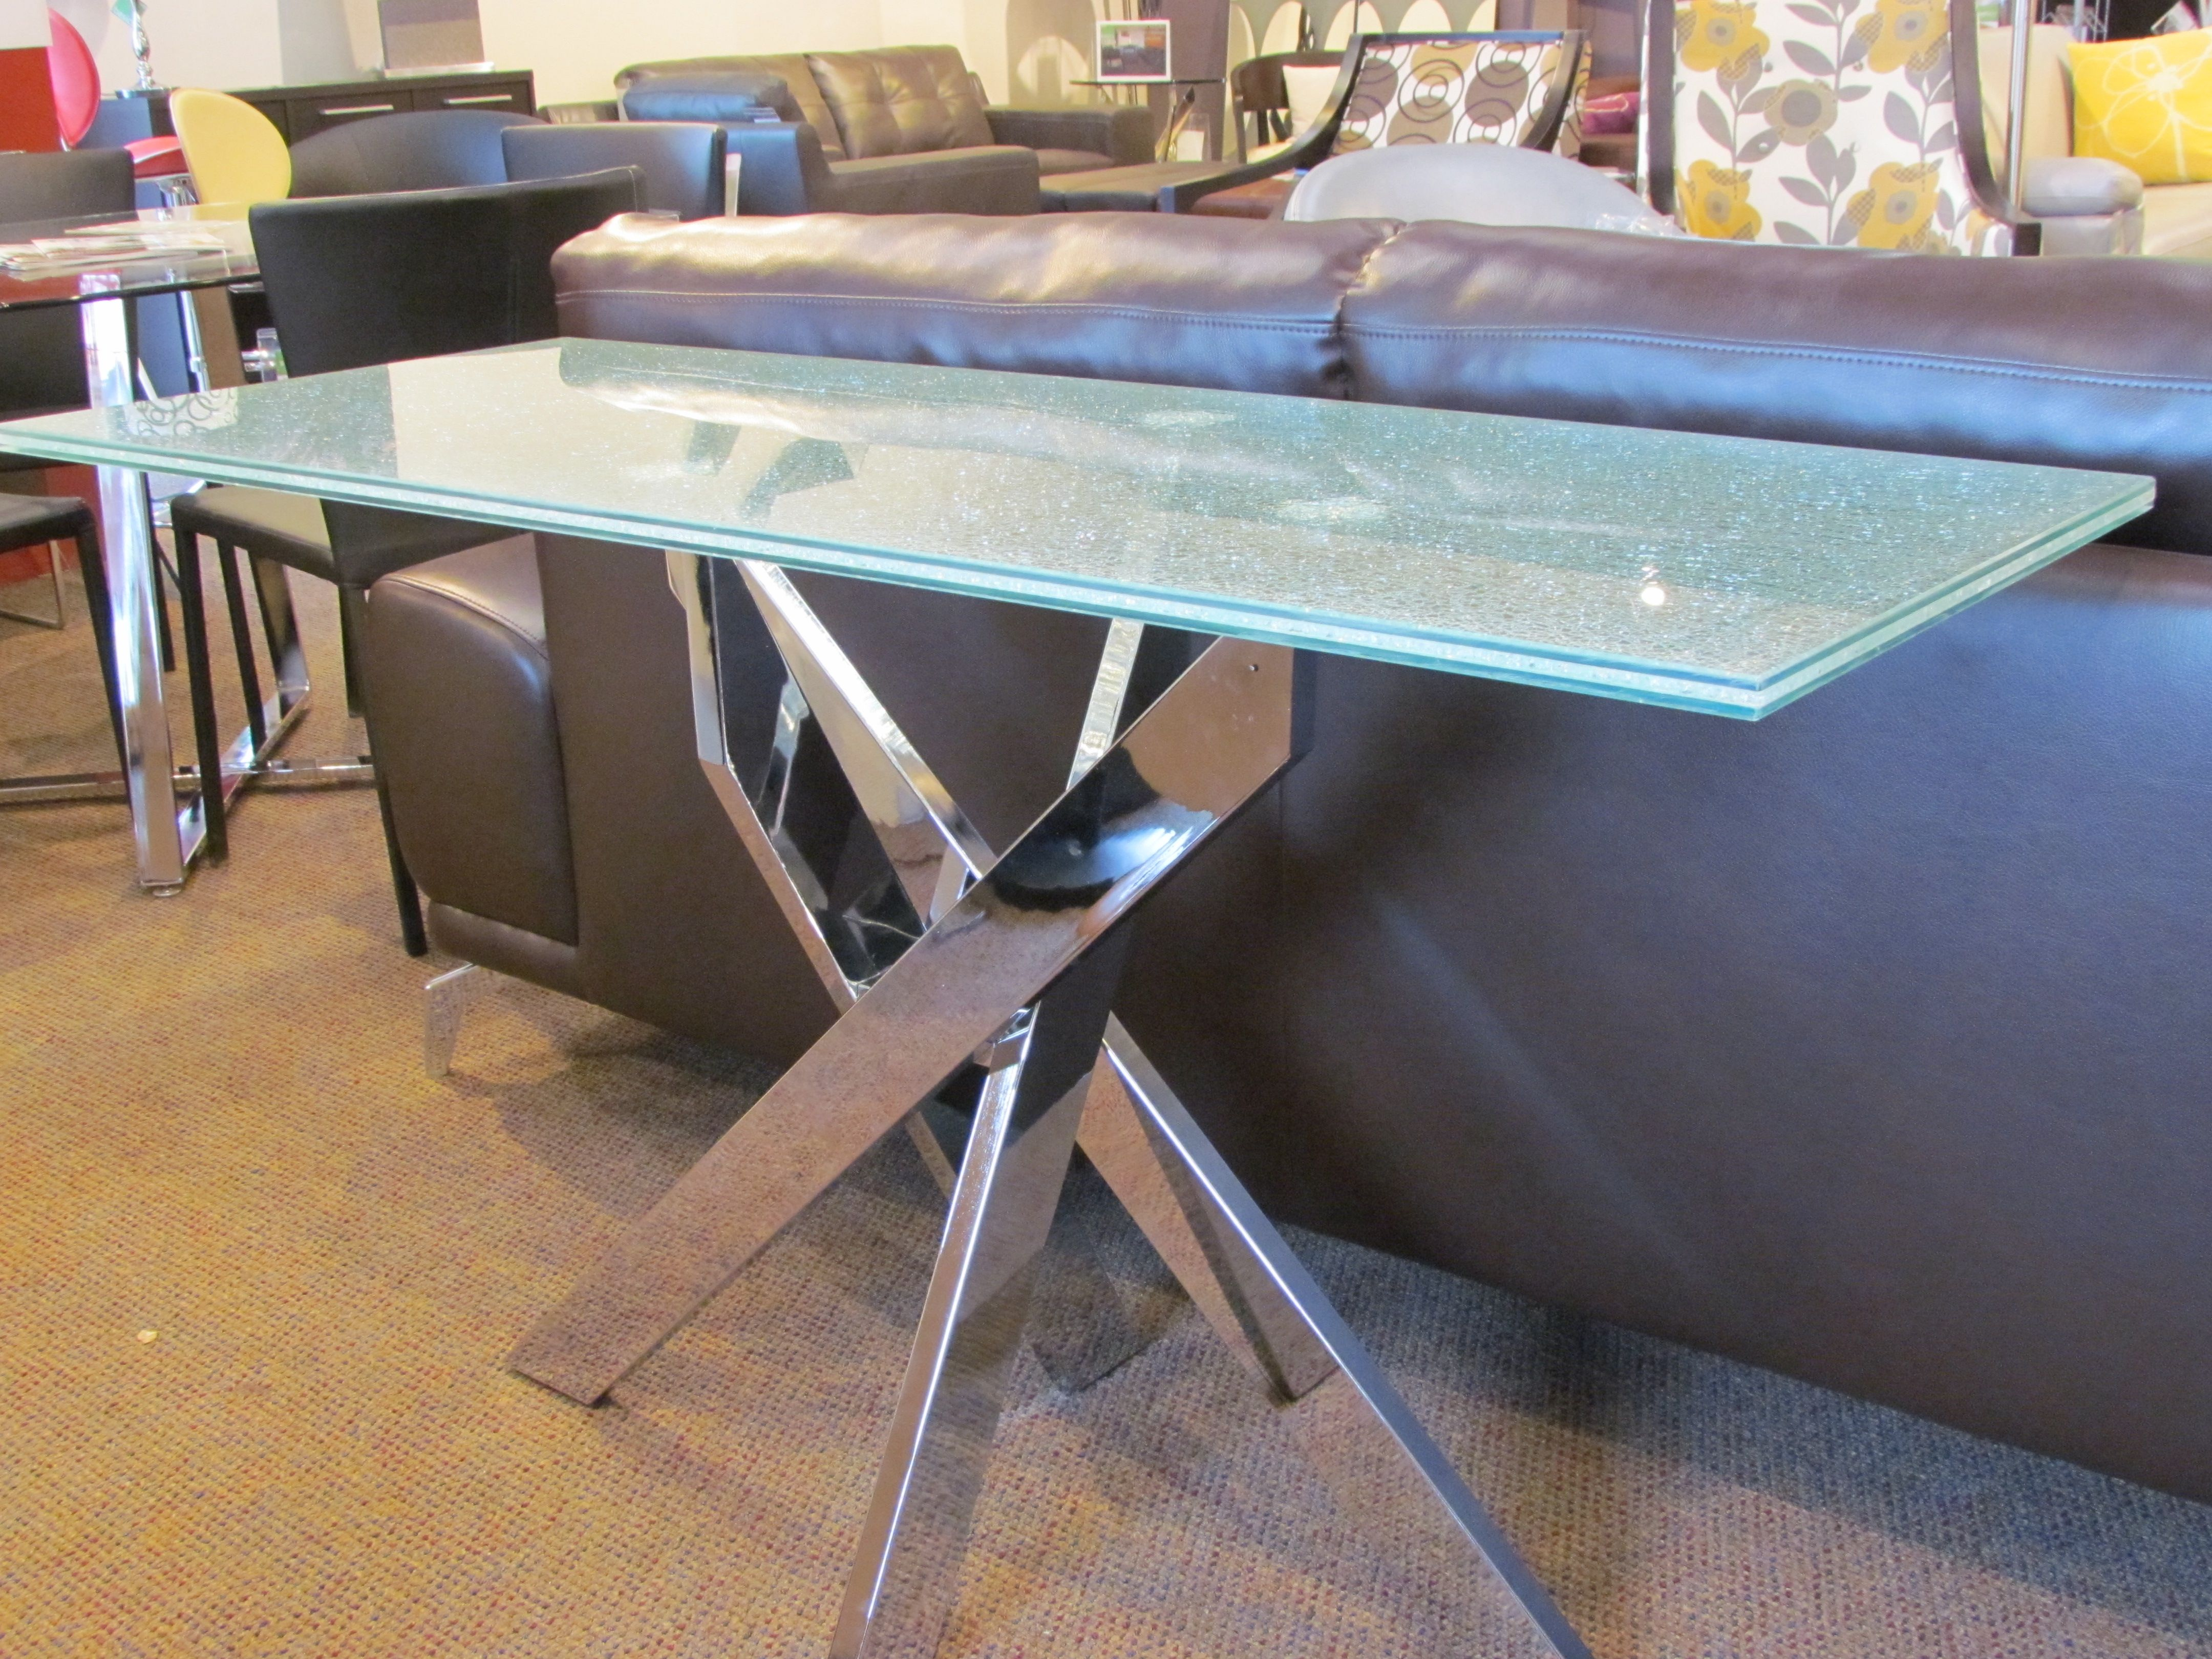 Stance Console Table W Cracked Glass Look Contemporary Home Office Furniture Contemporary Home Office Home Office Furniture [ 3240 x 4320 Pixel ]